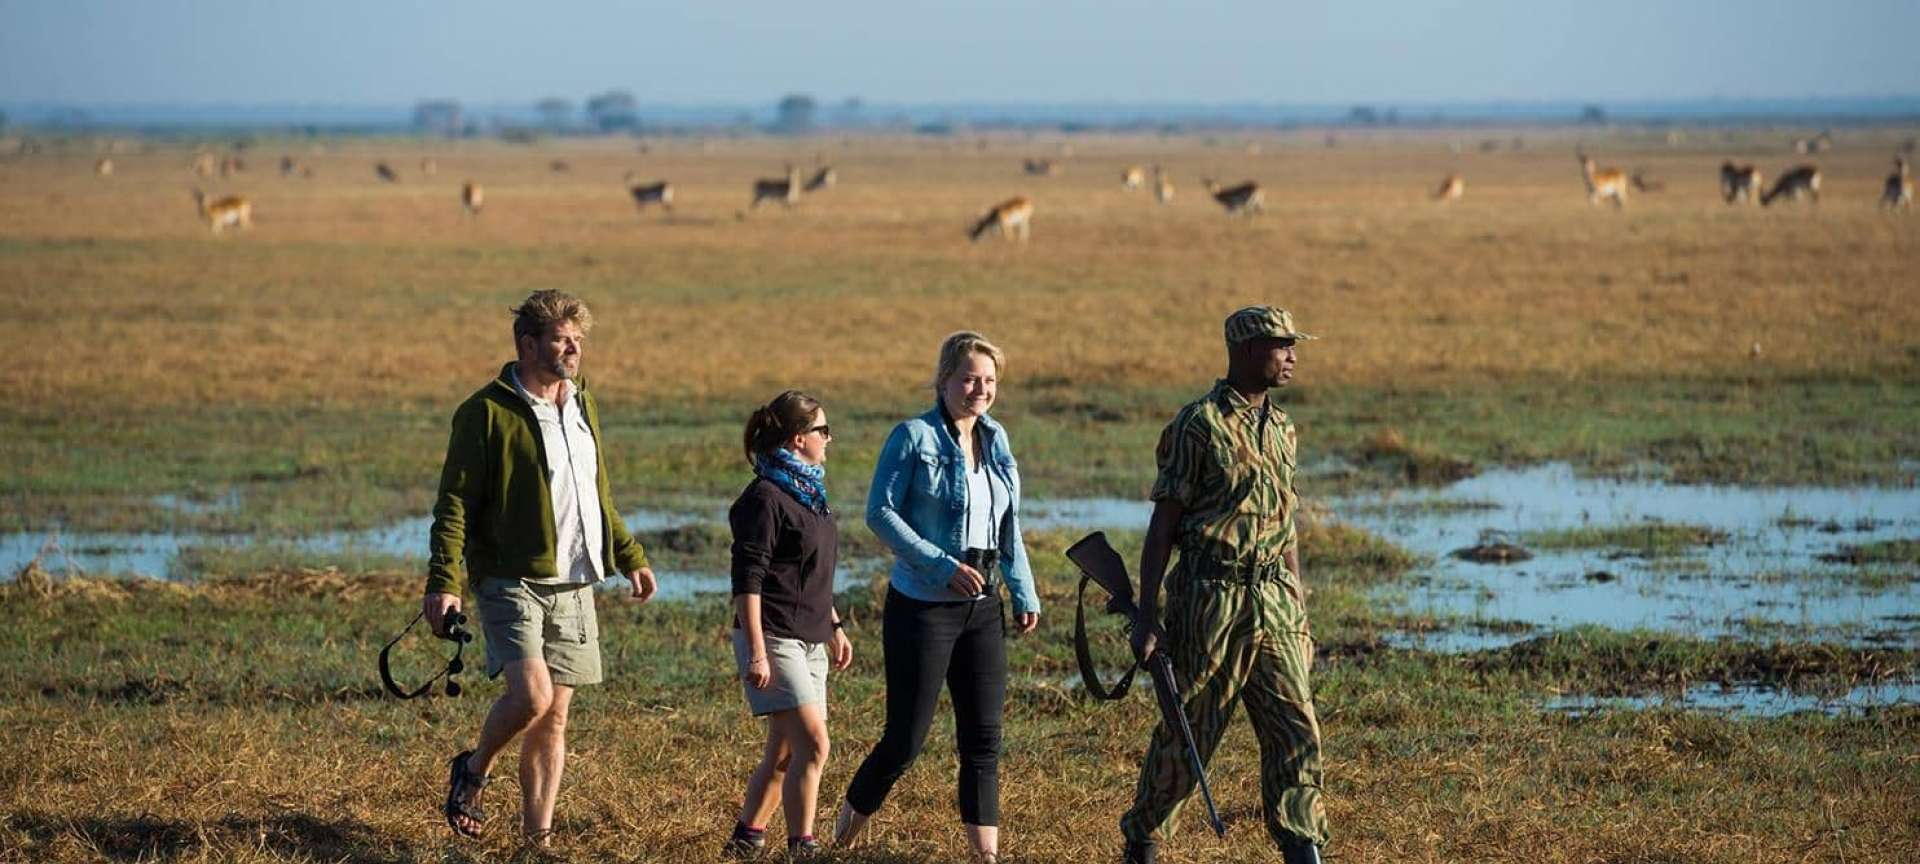 Busanga Plains - Africa Wildlife Safaris